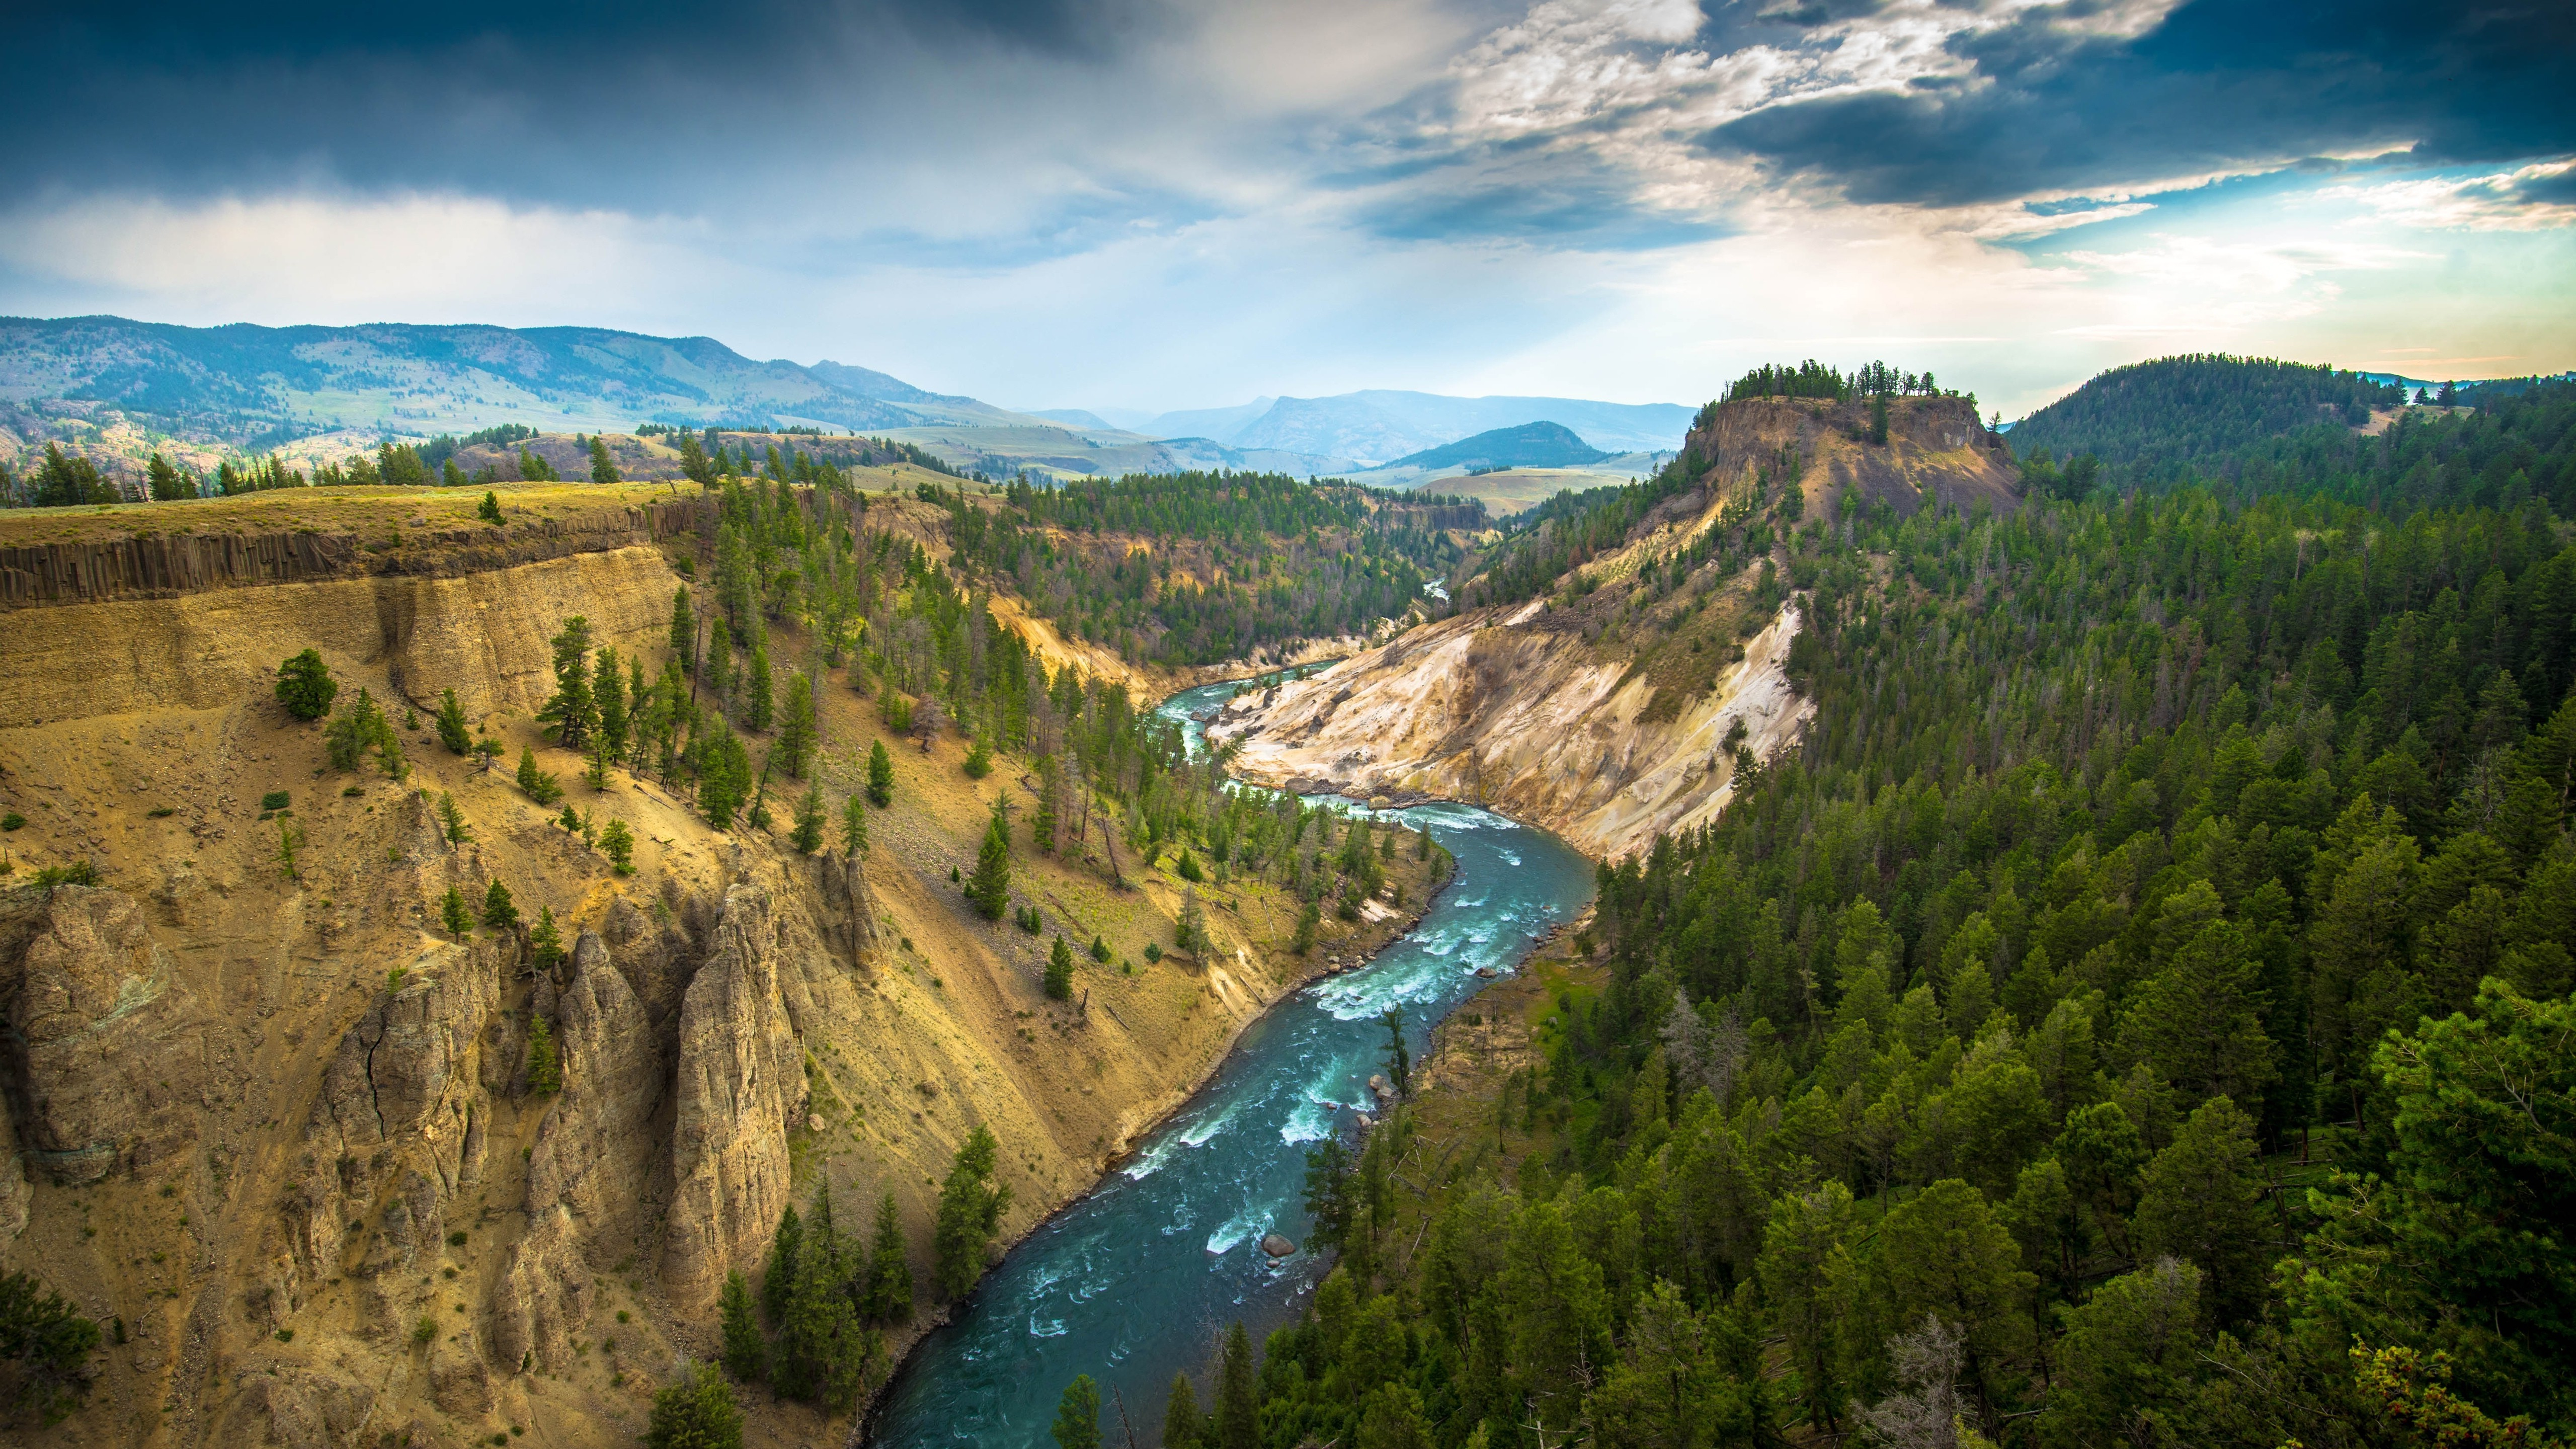 landscape Yellowstone National Park River Wallpapers HD 5120x2880